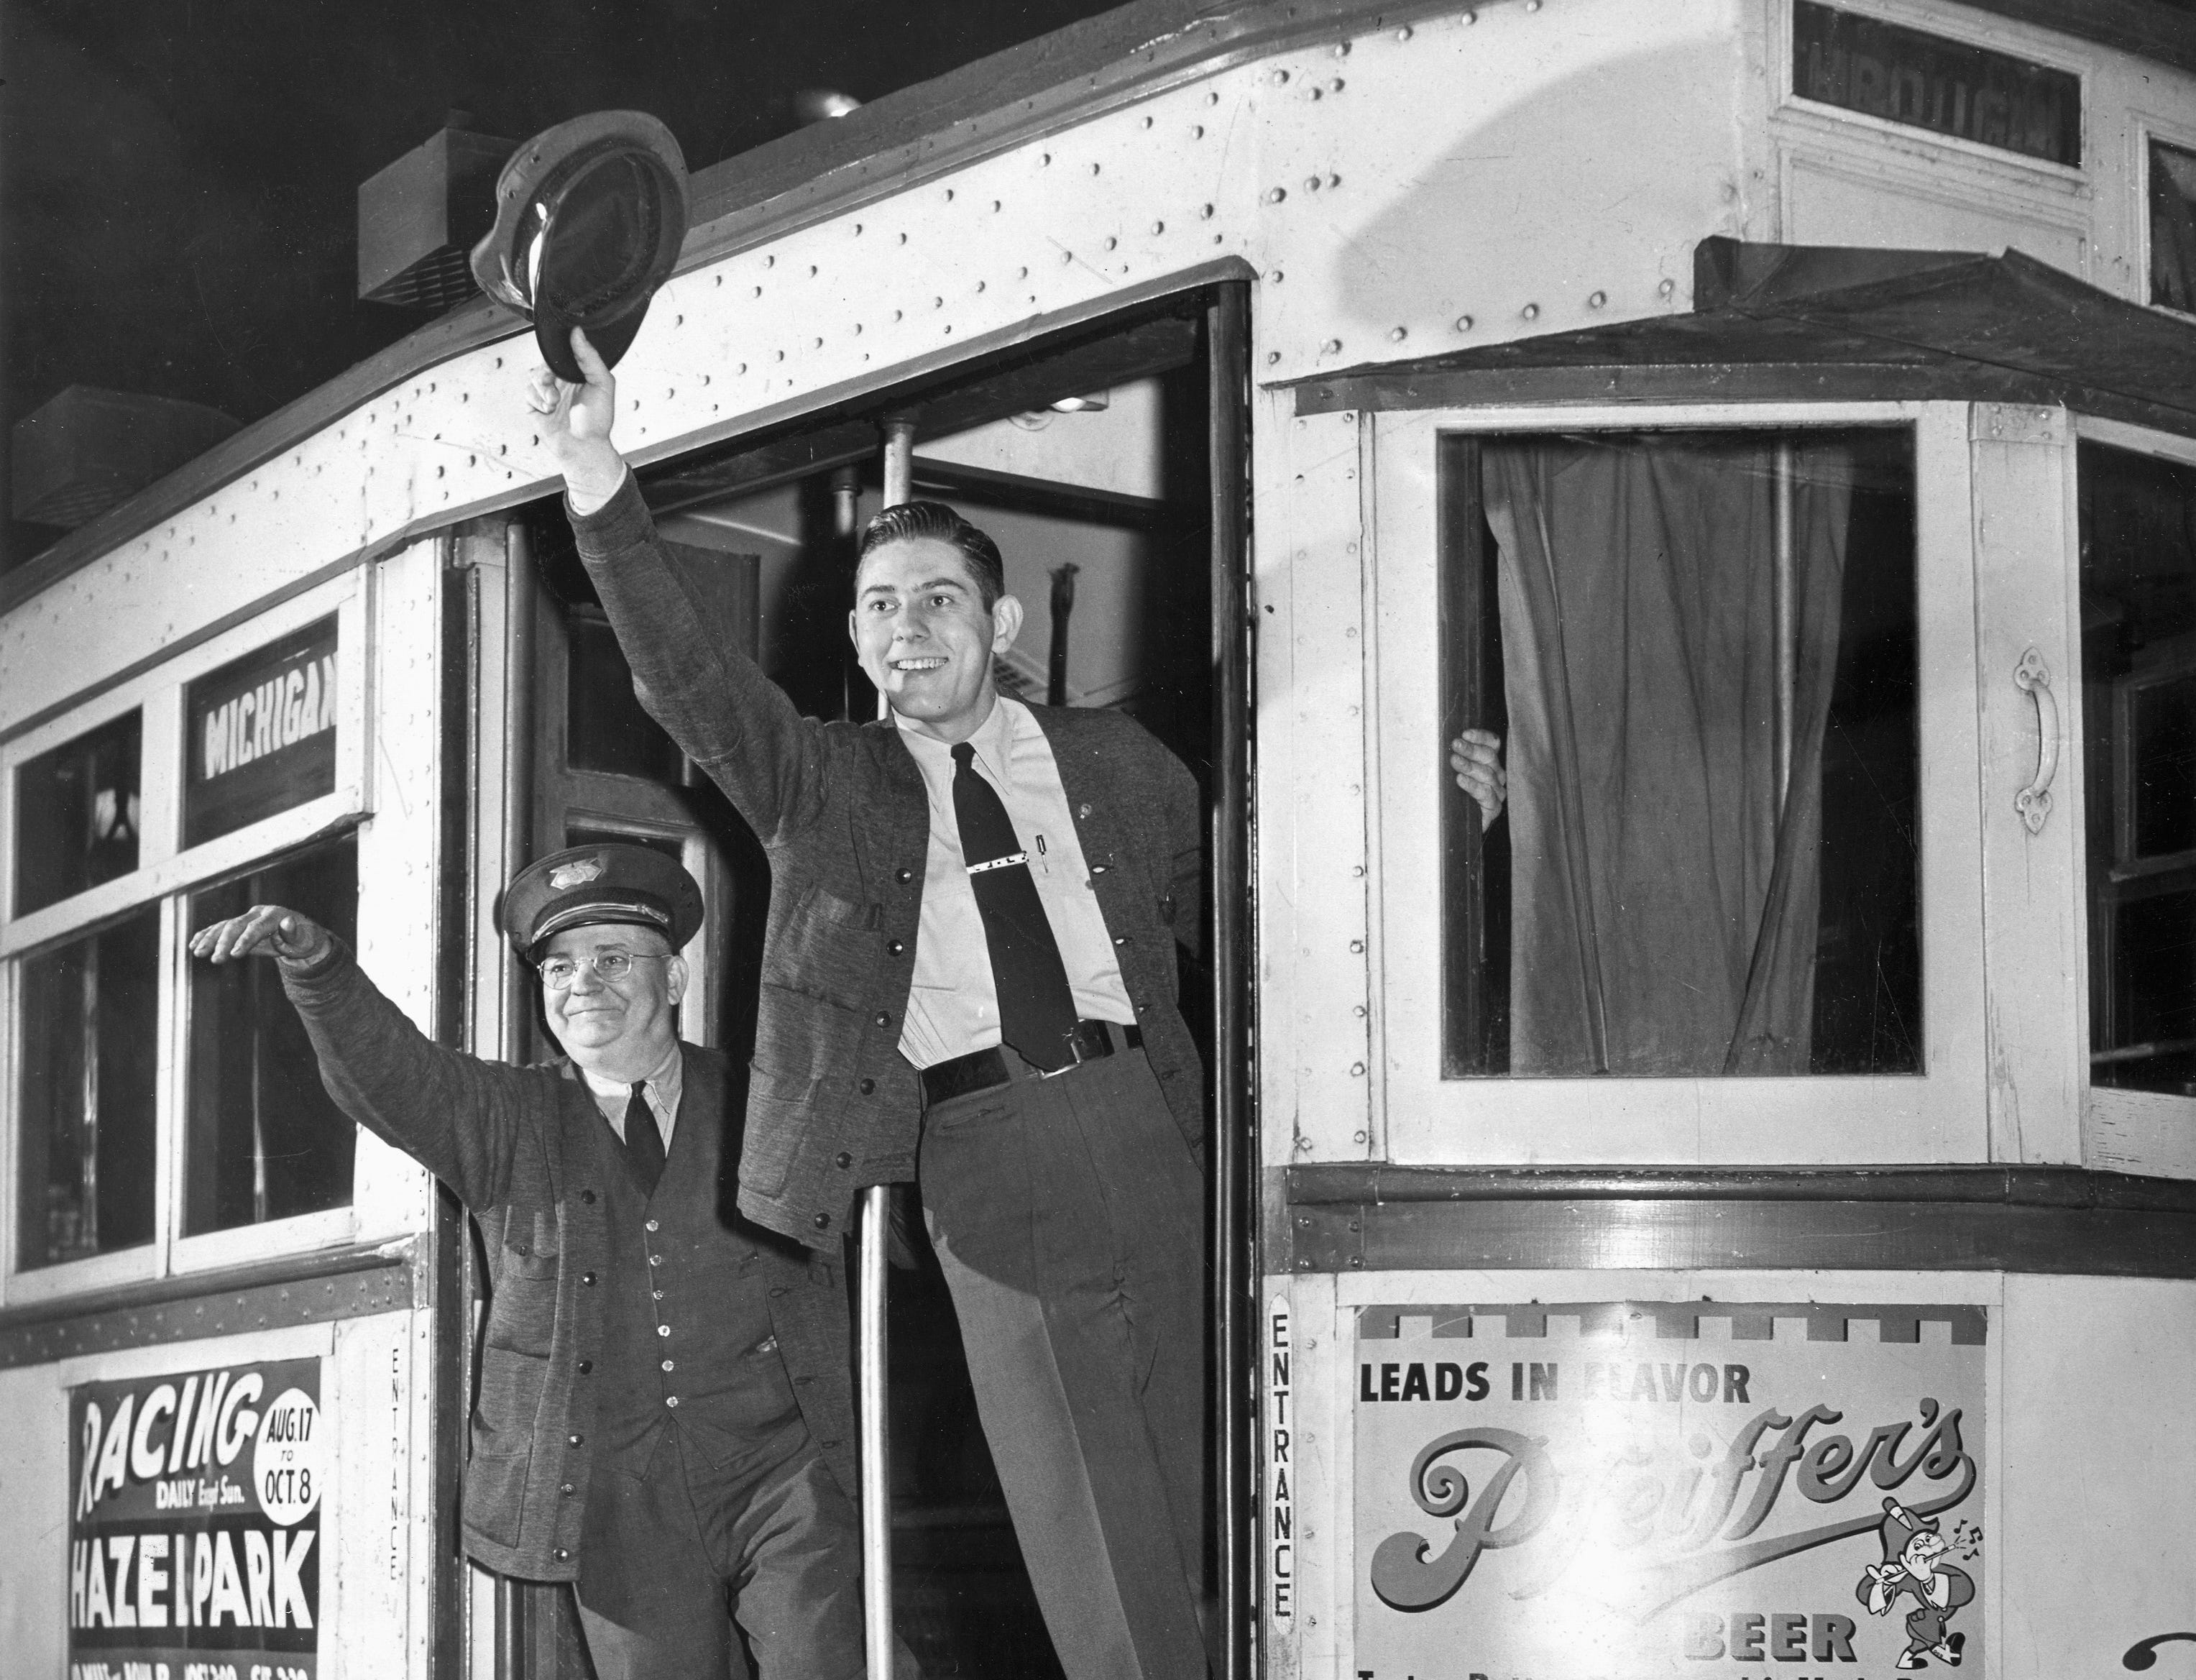 Two conductors waving from the last Department of Street Railways streetcar to leave the Baker terminal in Detroit, circa 1949. The Baker terminal was closed by Department of Street Railways and the car was shifted to the Wyoming barn.